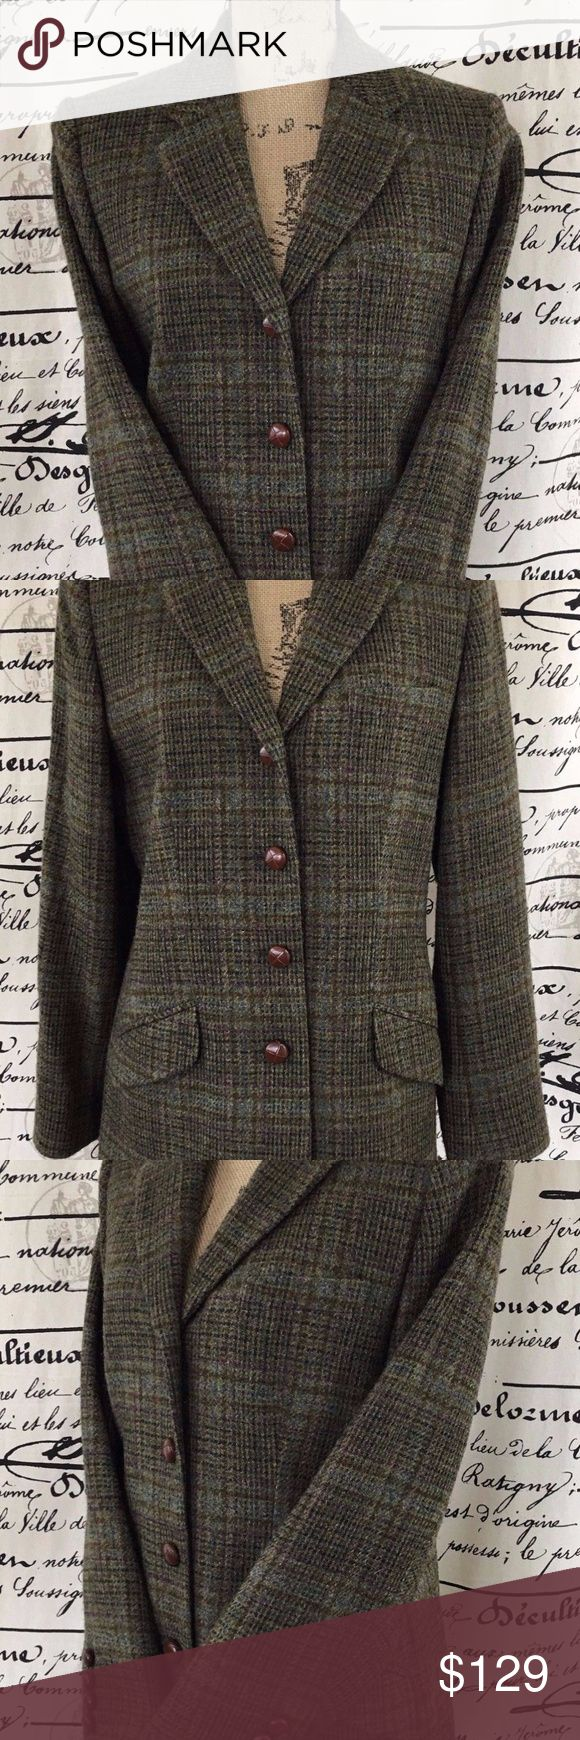 Vintage Orvis Wool Coat Plaid Single Vent Coat Item: Vintage Orvis Sporting Traditions Women's 100% Wool Coat Plaid Single Vent Coat With Shoulder Pads Style: Orvis Vintage Women's  Single Breasted 4 Button Single Vent Plaid Button Down Winter Fall Outdoor Coat Color: Green/Multi-color- See Pics Size: 8 Measurements: Underarm to Underarm 18 Inches , Overall Length 25.5 Inches from Bottom of Collar, Sleeve 23.5 Inches Measurements: Waist Flat 18 Inches, Shoulder Width 15.5 Inches Material…